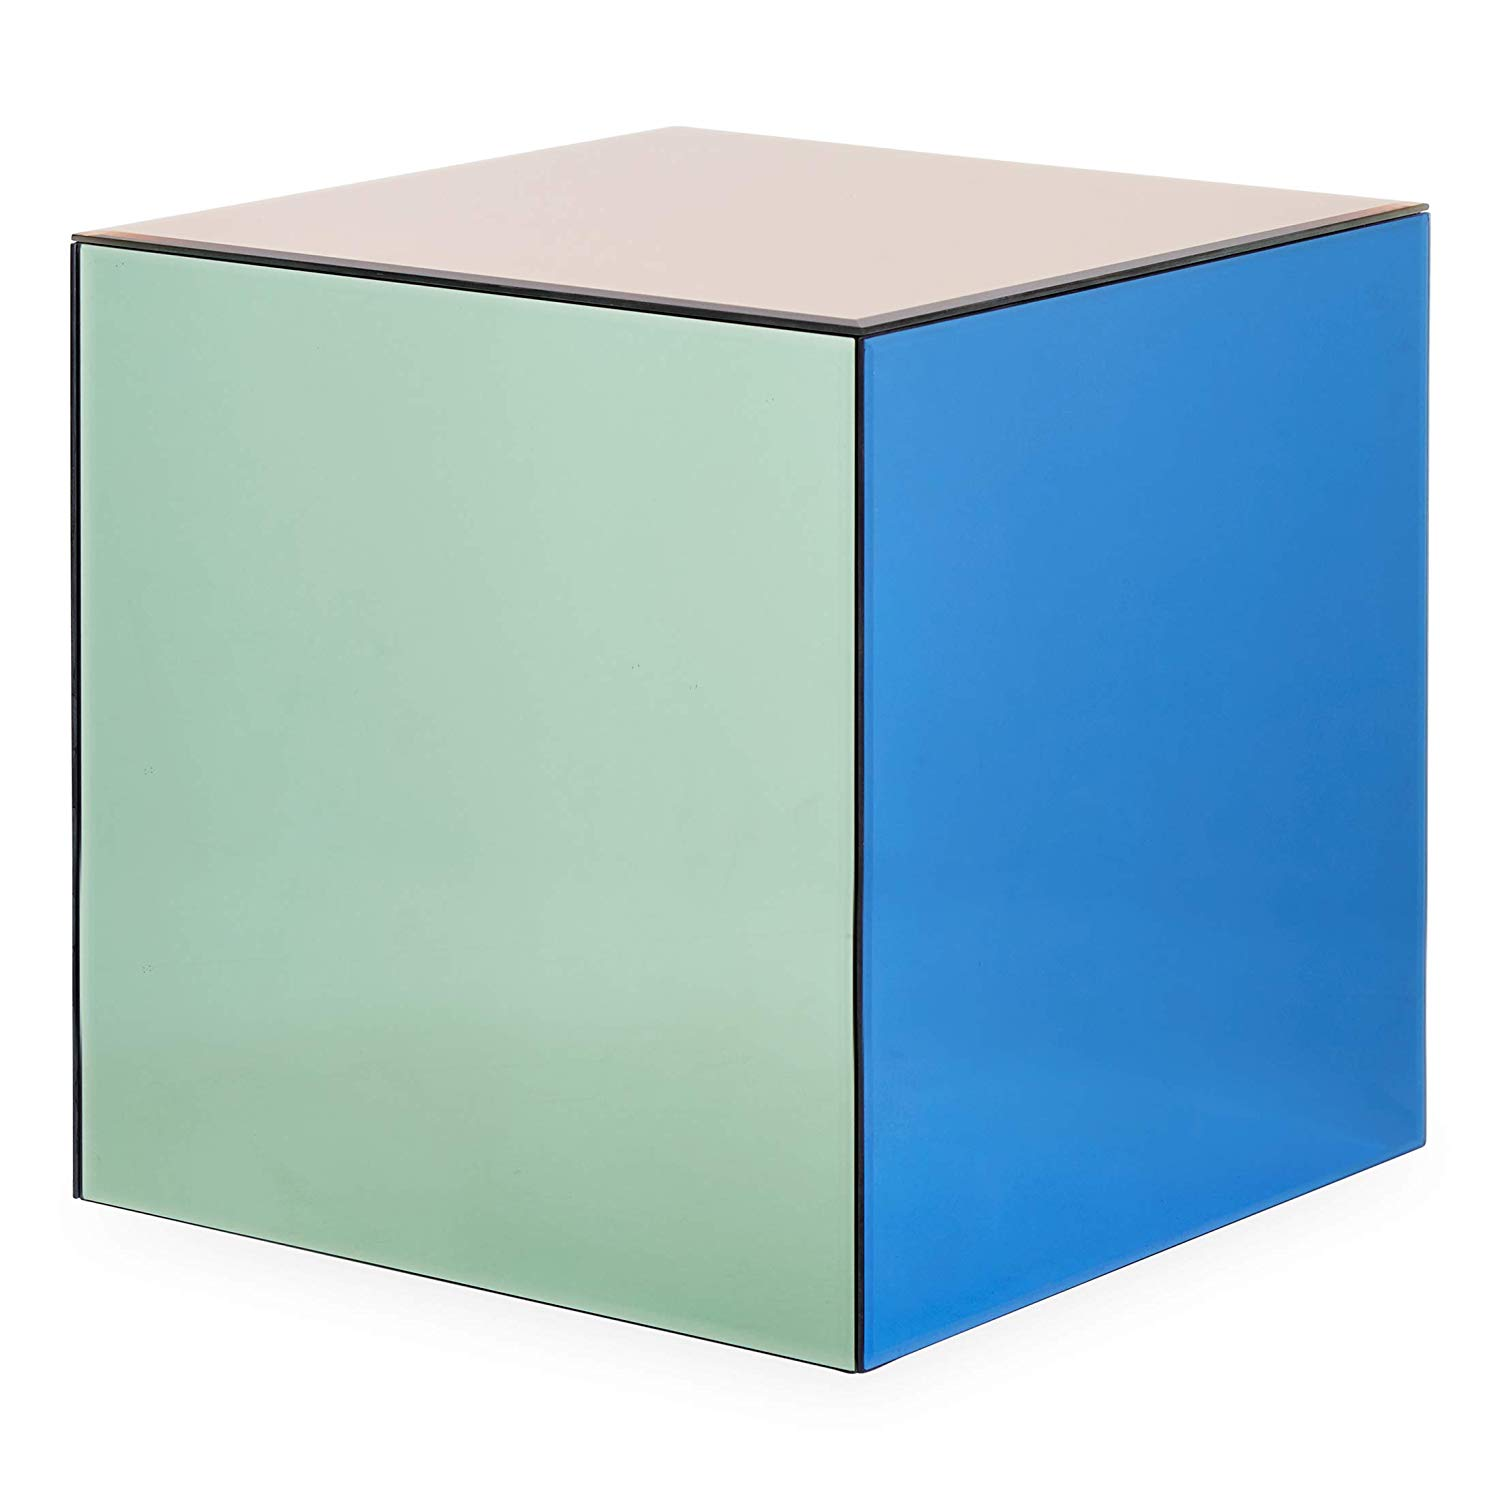 now house jonathan adler chroma cube accent table teal blue multicolor kitchen dining reclaimed wood pier one chairs round silver mirror tiffany floor lamp clearance white